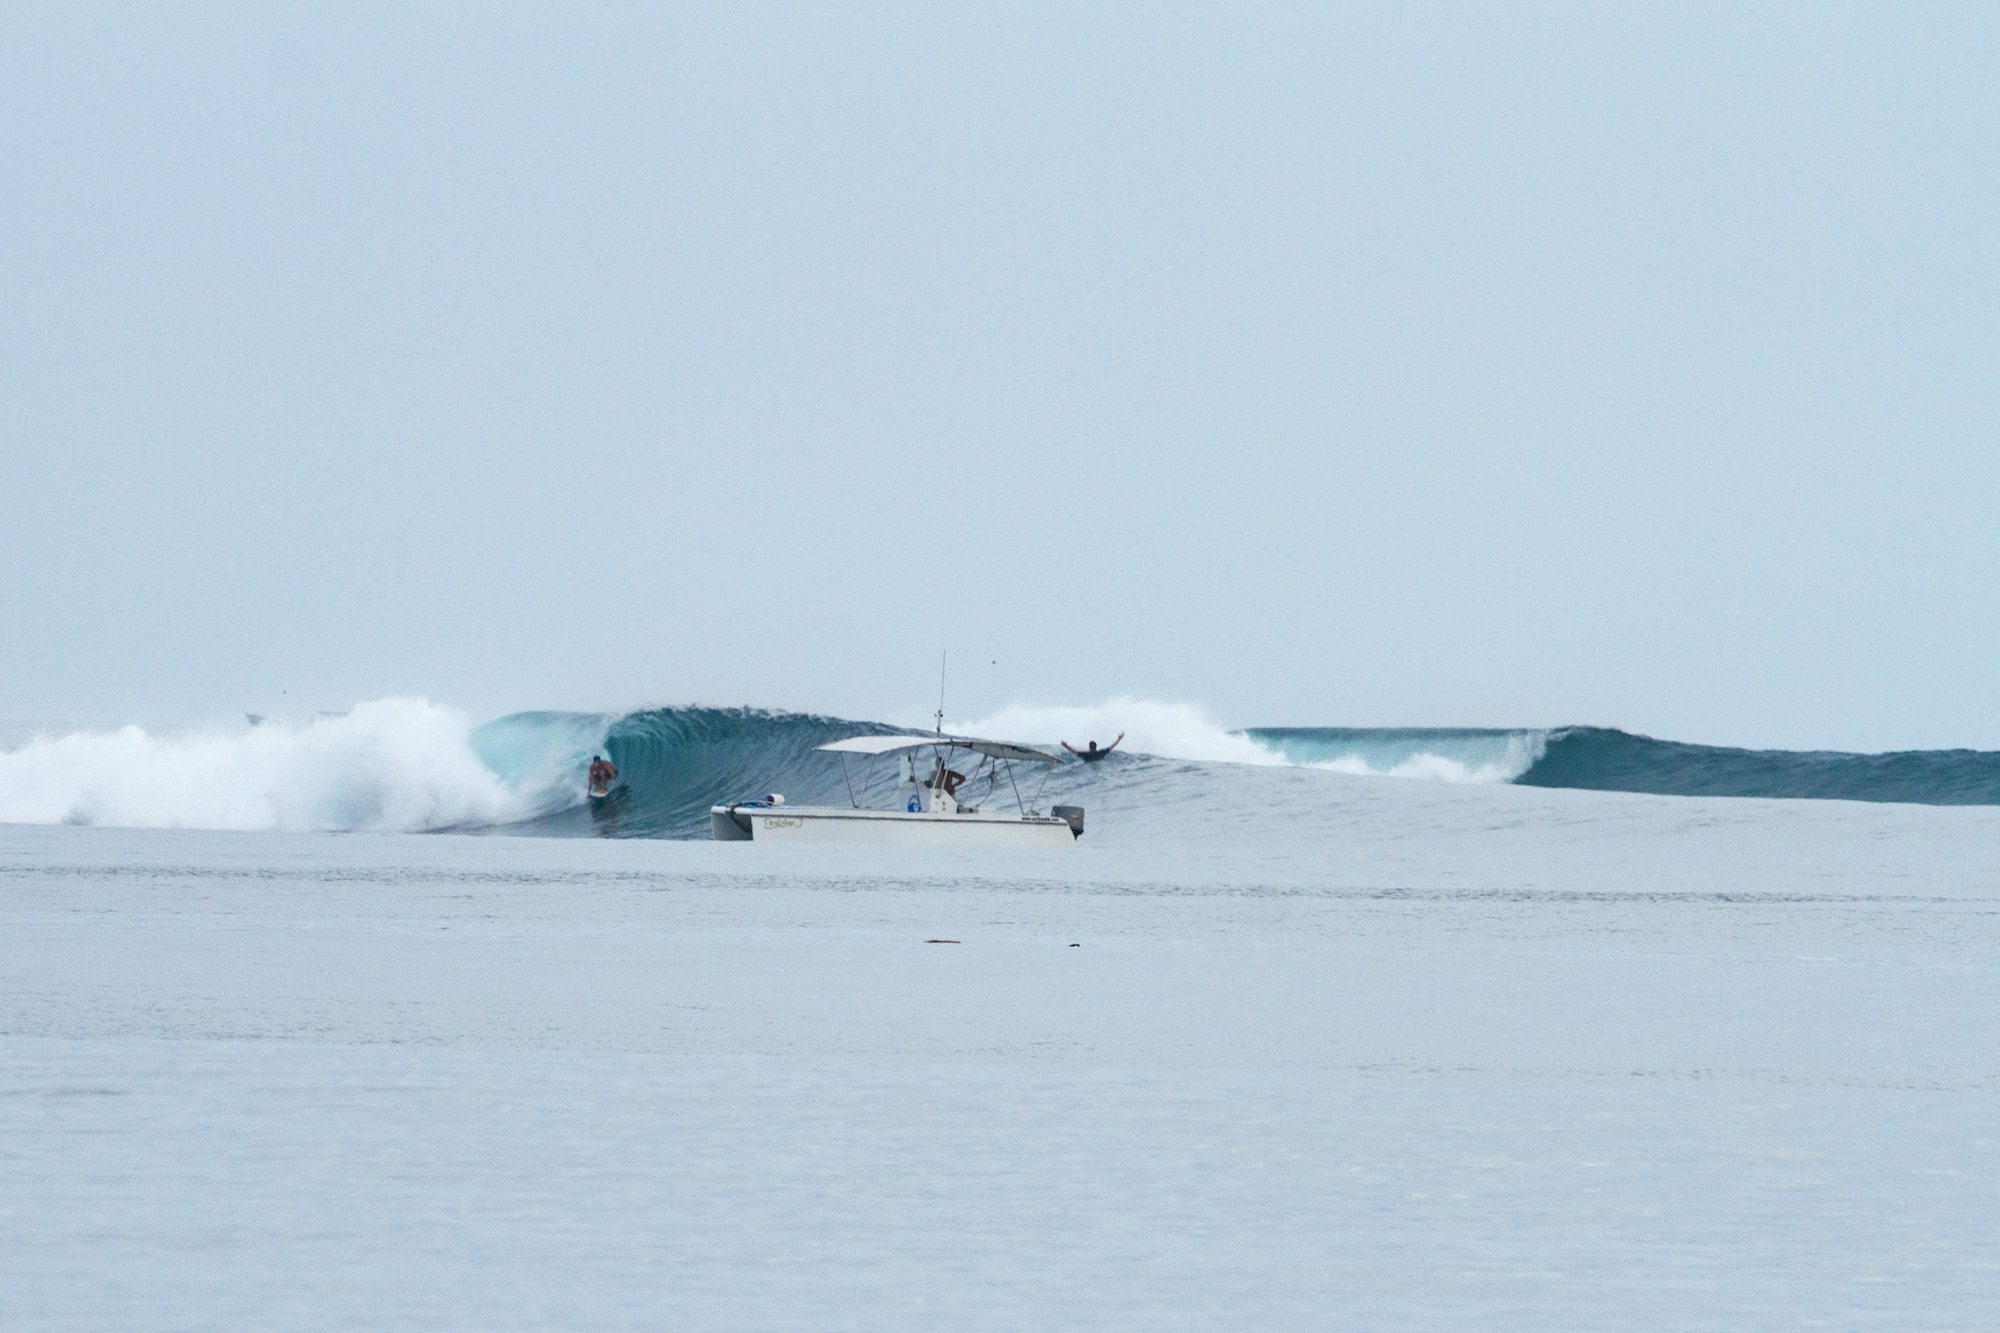 clarets powercat chasing with the waves by surf banyak